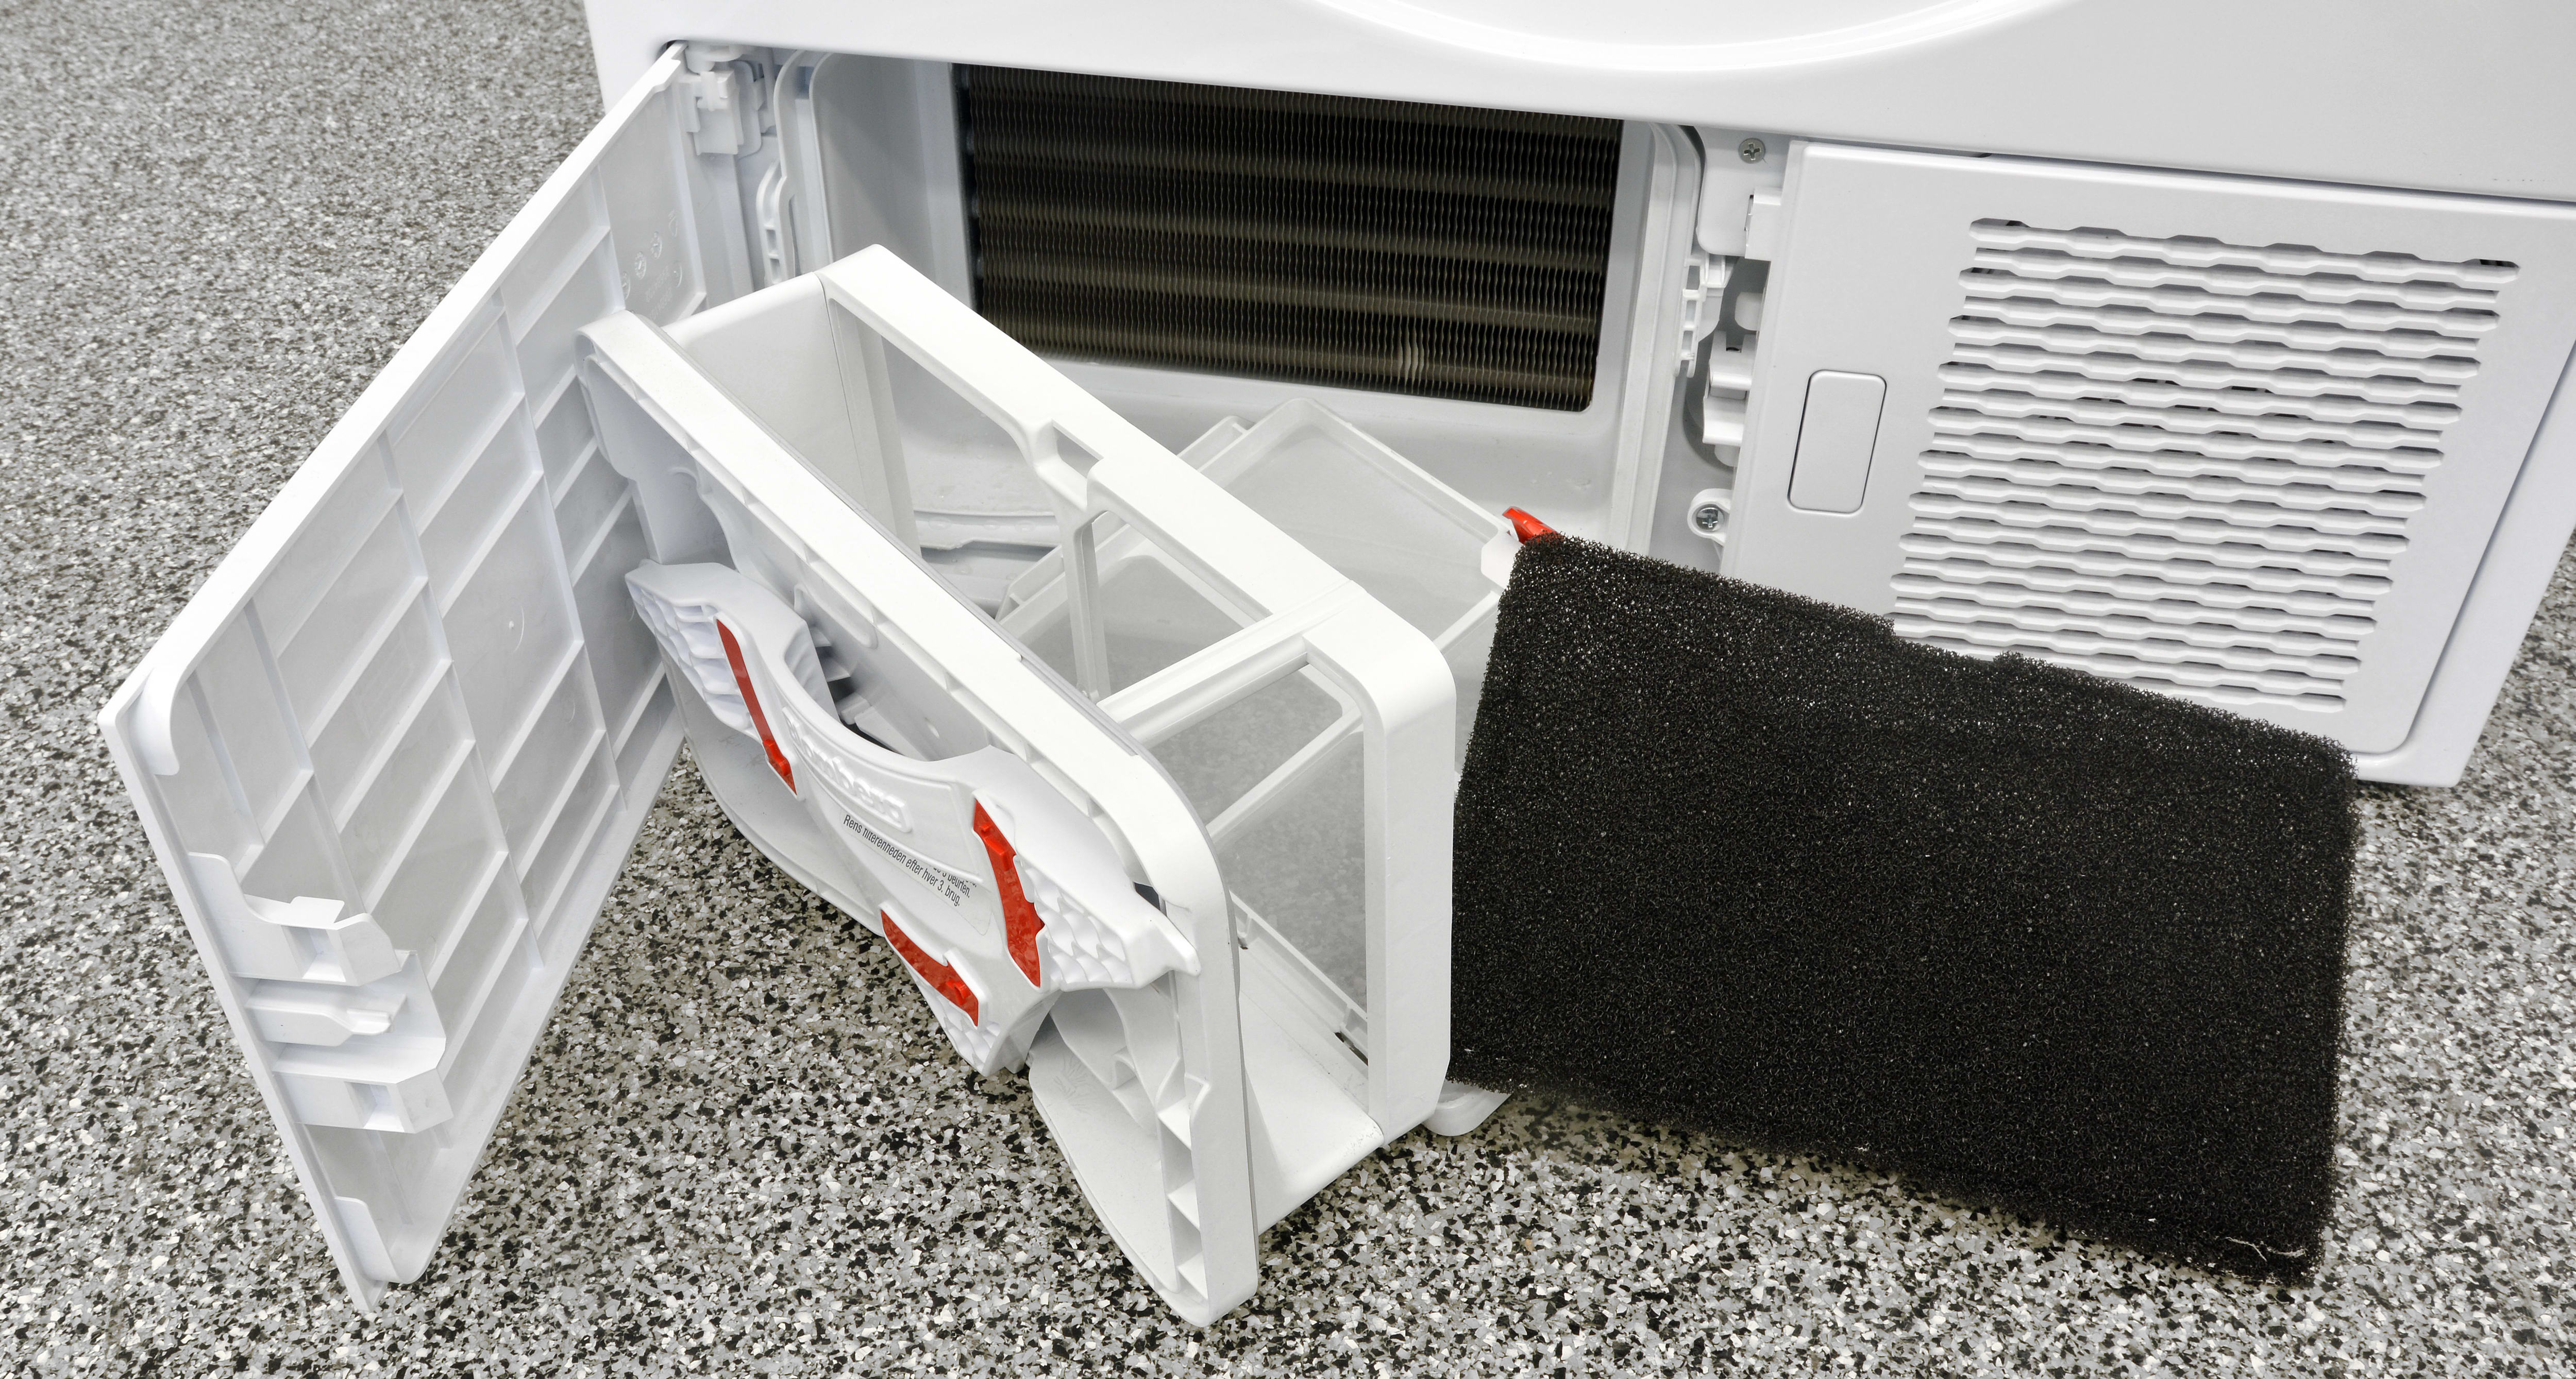 To clean, release the red clasp on top, take out the black pad, and remove any lint from the Blomberg DHP24412W.